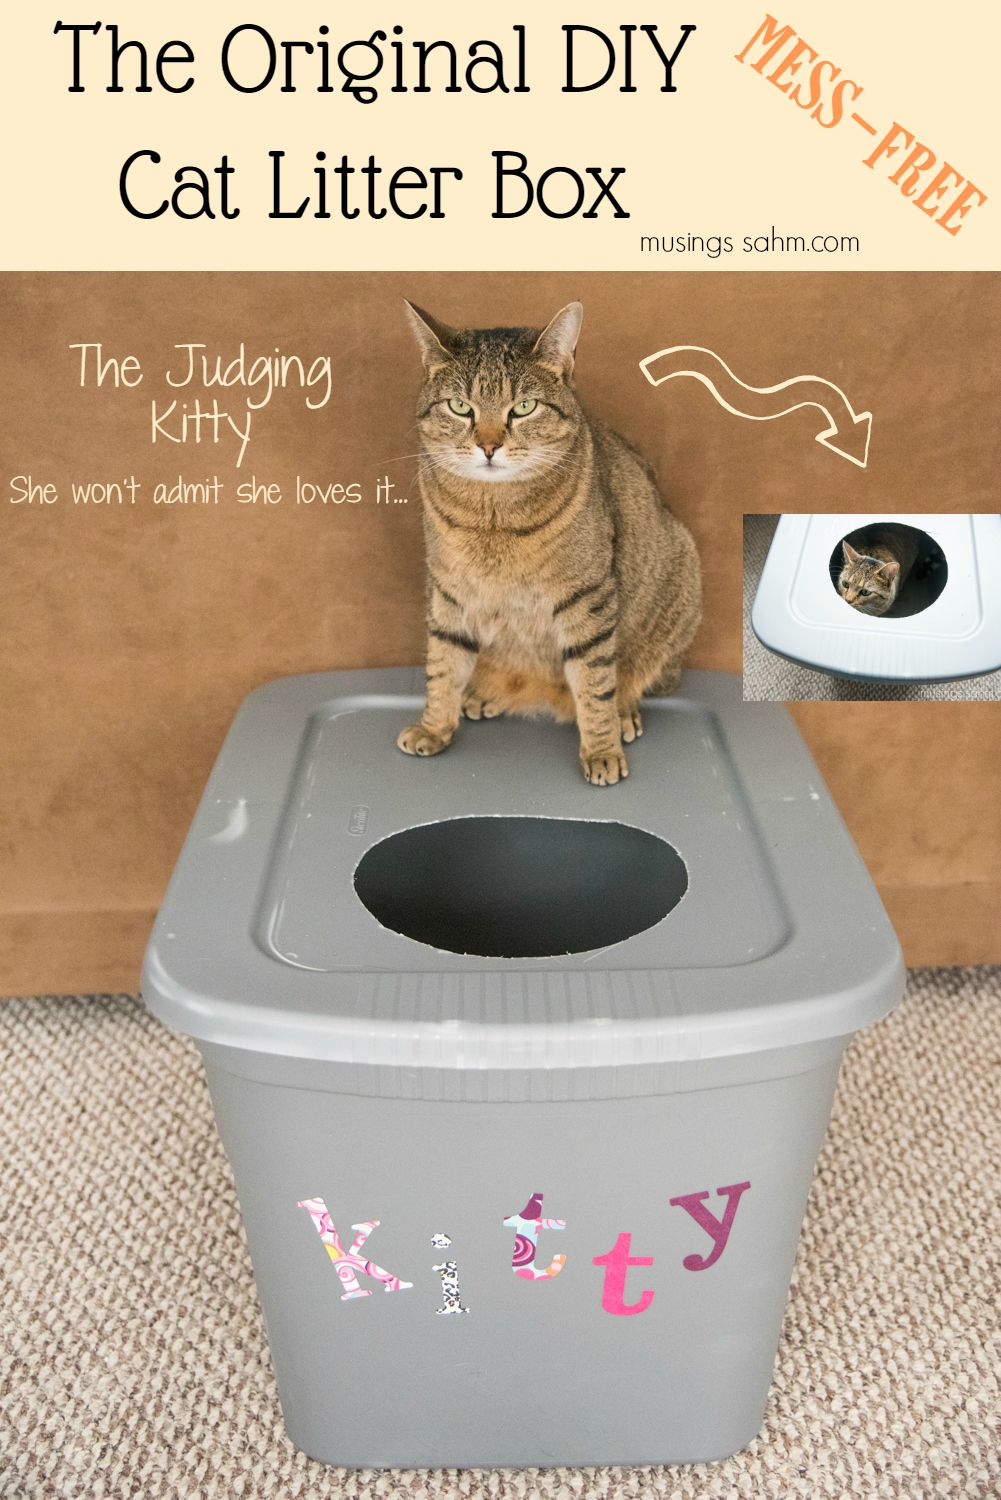 The Original Diy Mess Free Cat Litter Box Cat Litter Box Cat Litter Litter Box